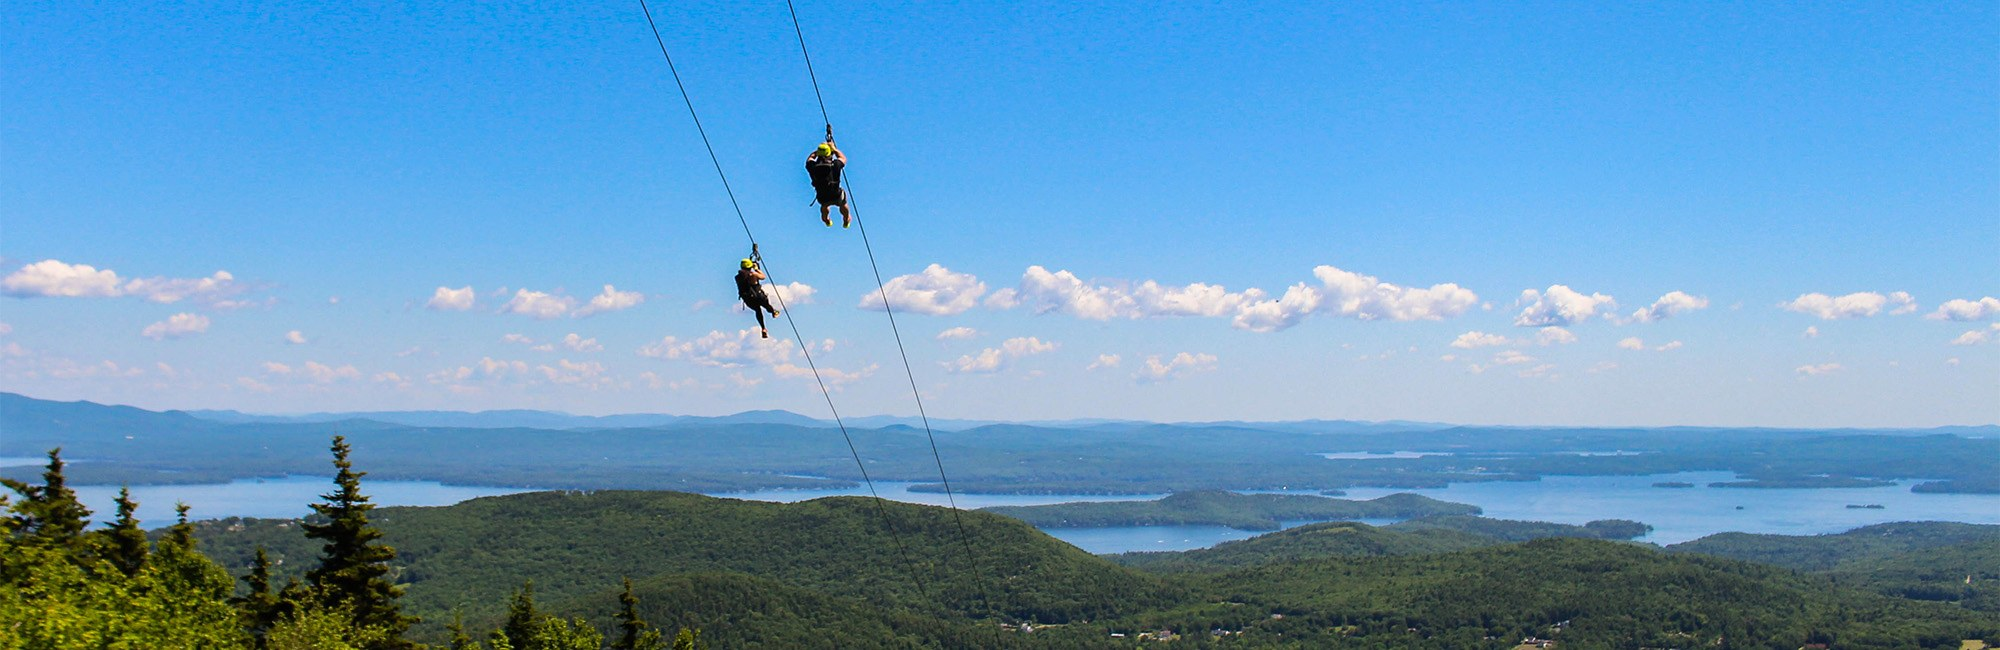 Ziplining in the summer overlooking the lake